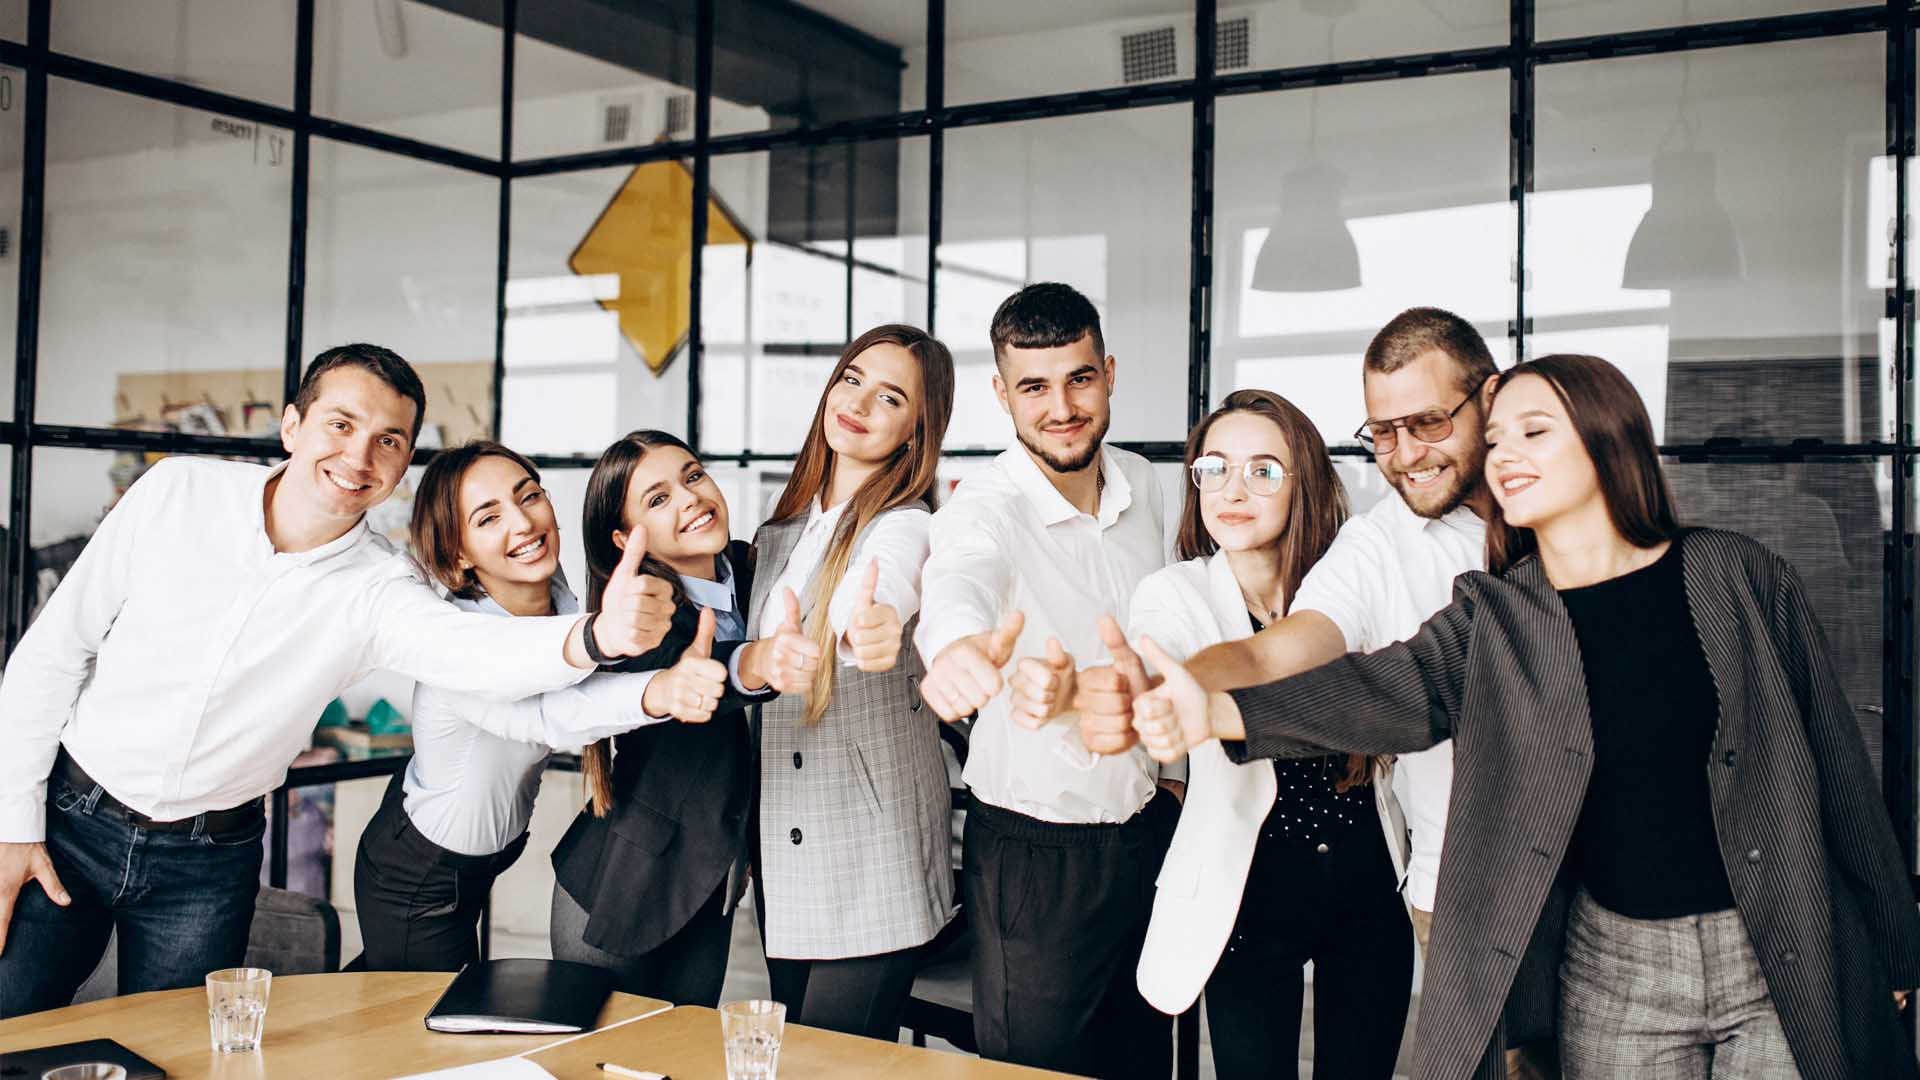 Cultural Diversity in the Workplace